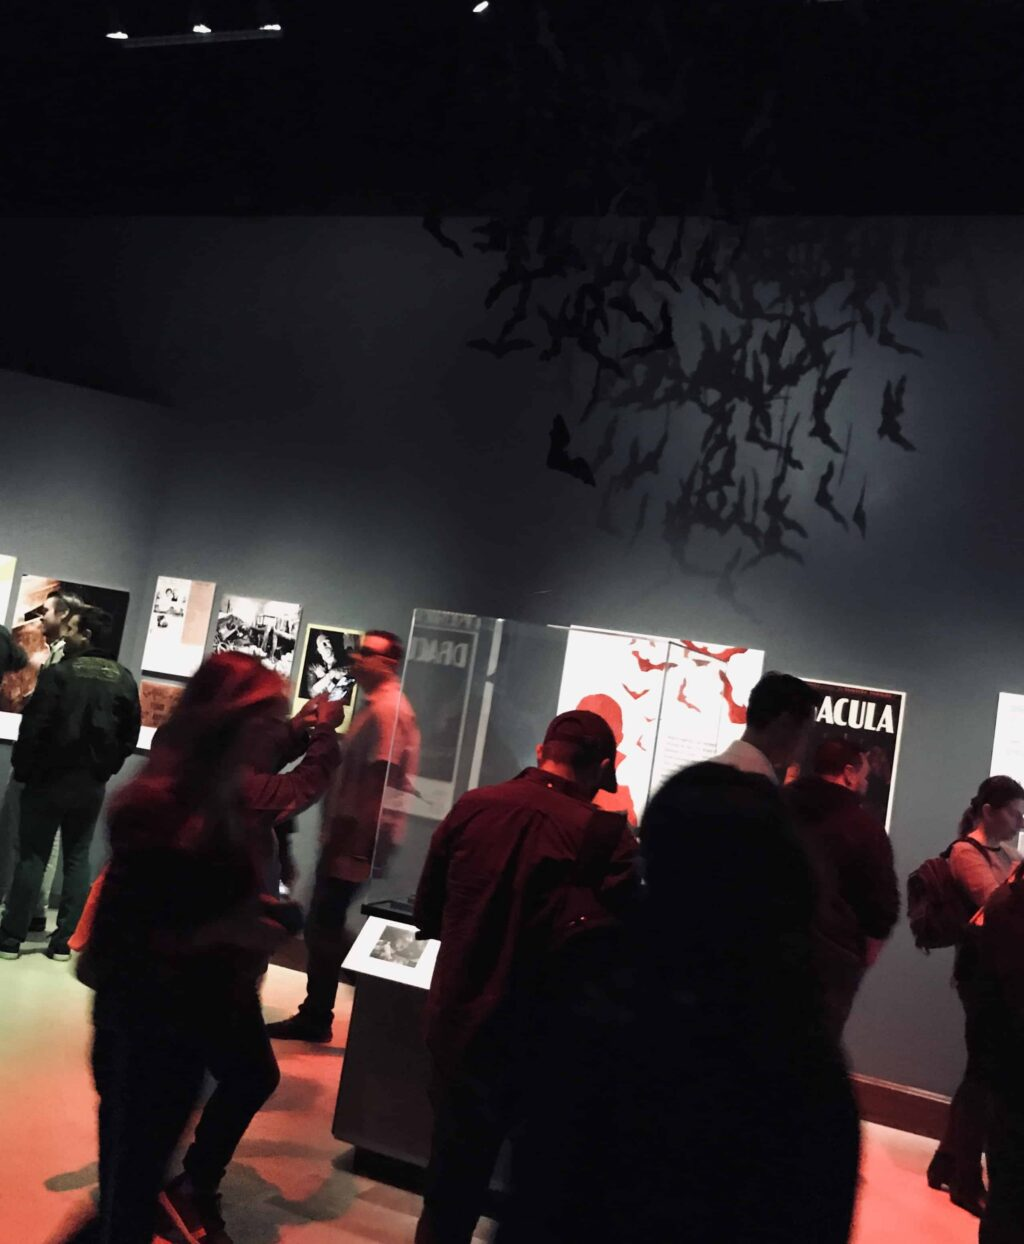 IMG 2895 1024x1244 - Exclusive Video & Photos: Natural History of Horror Exhibit Opens